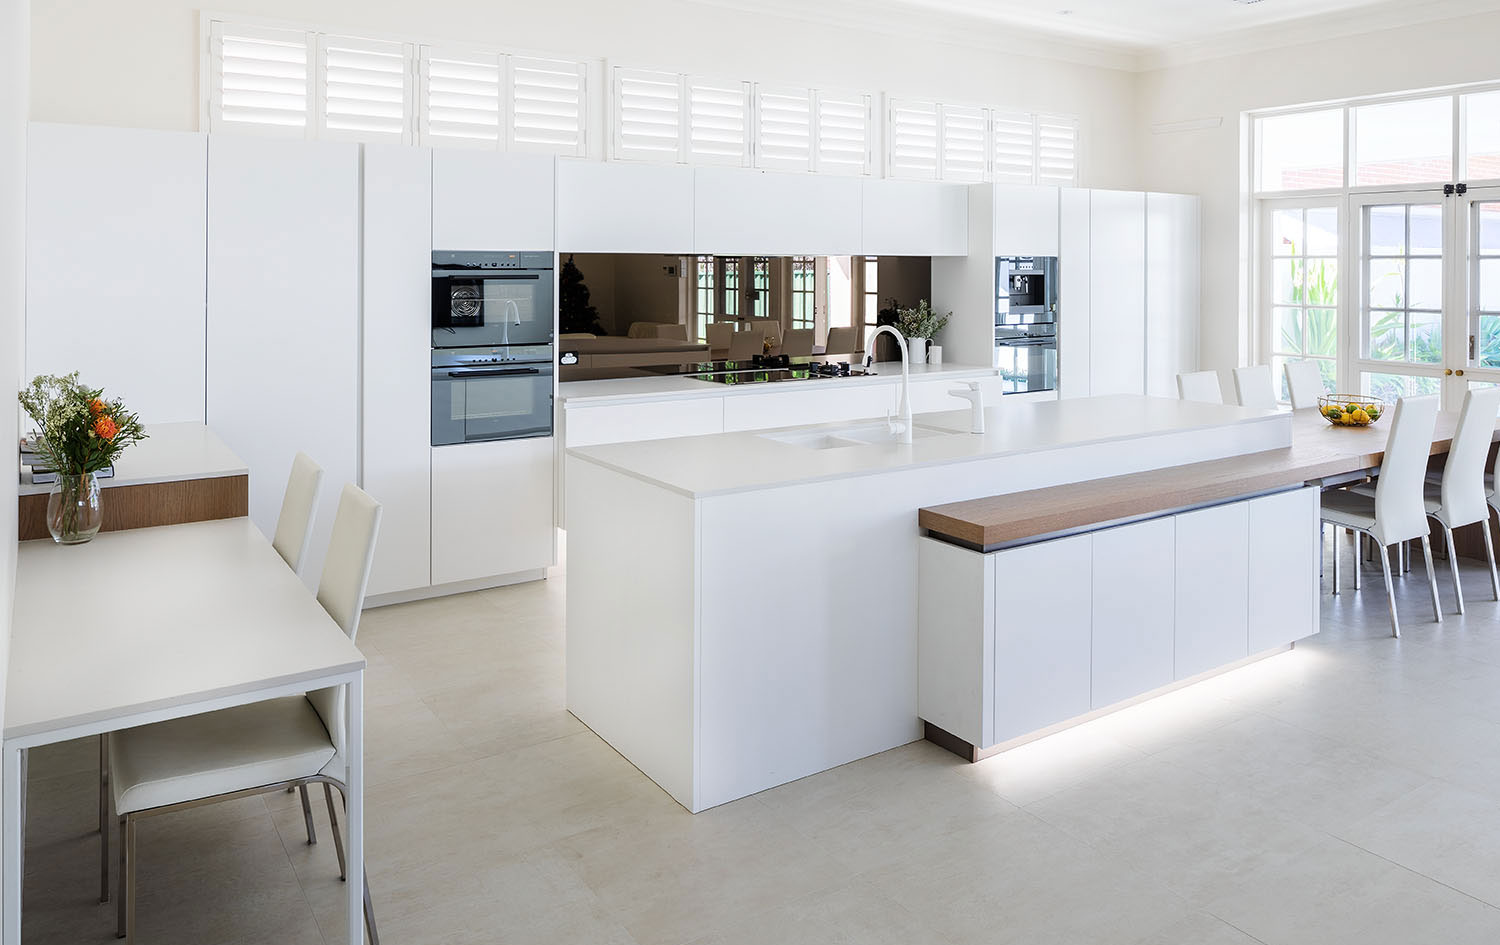 Kitchen Designs: Where Modern And Traditional Meet: An Elegant Kitchen Design